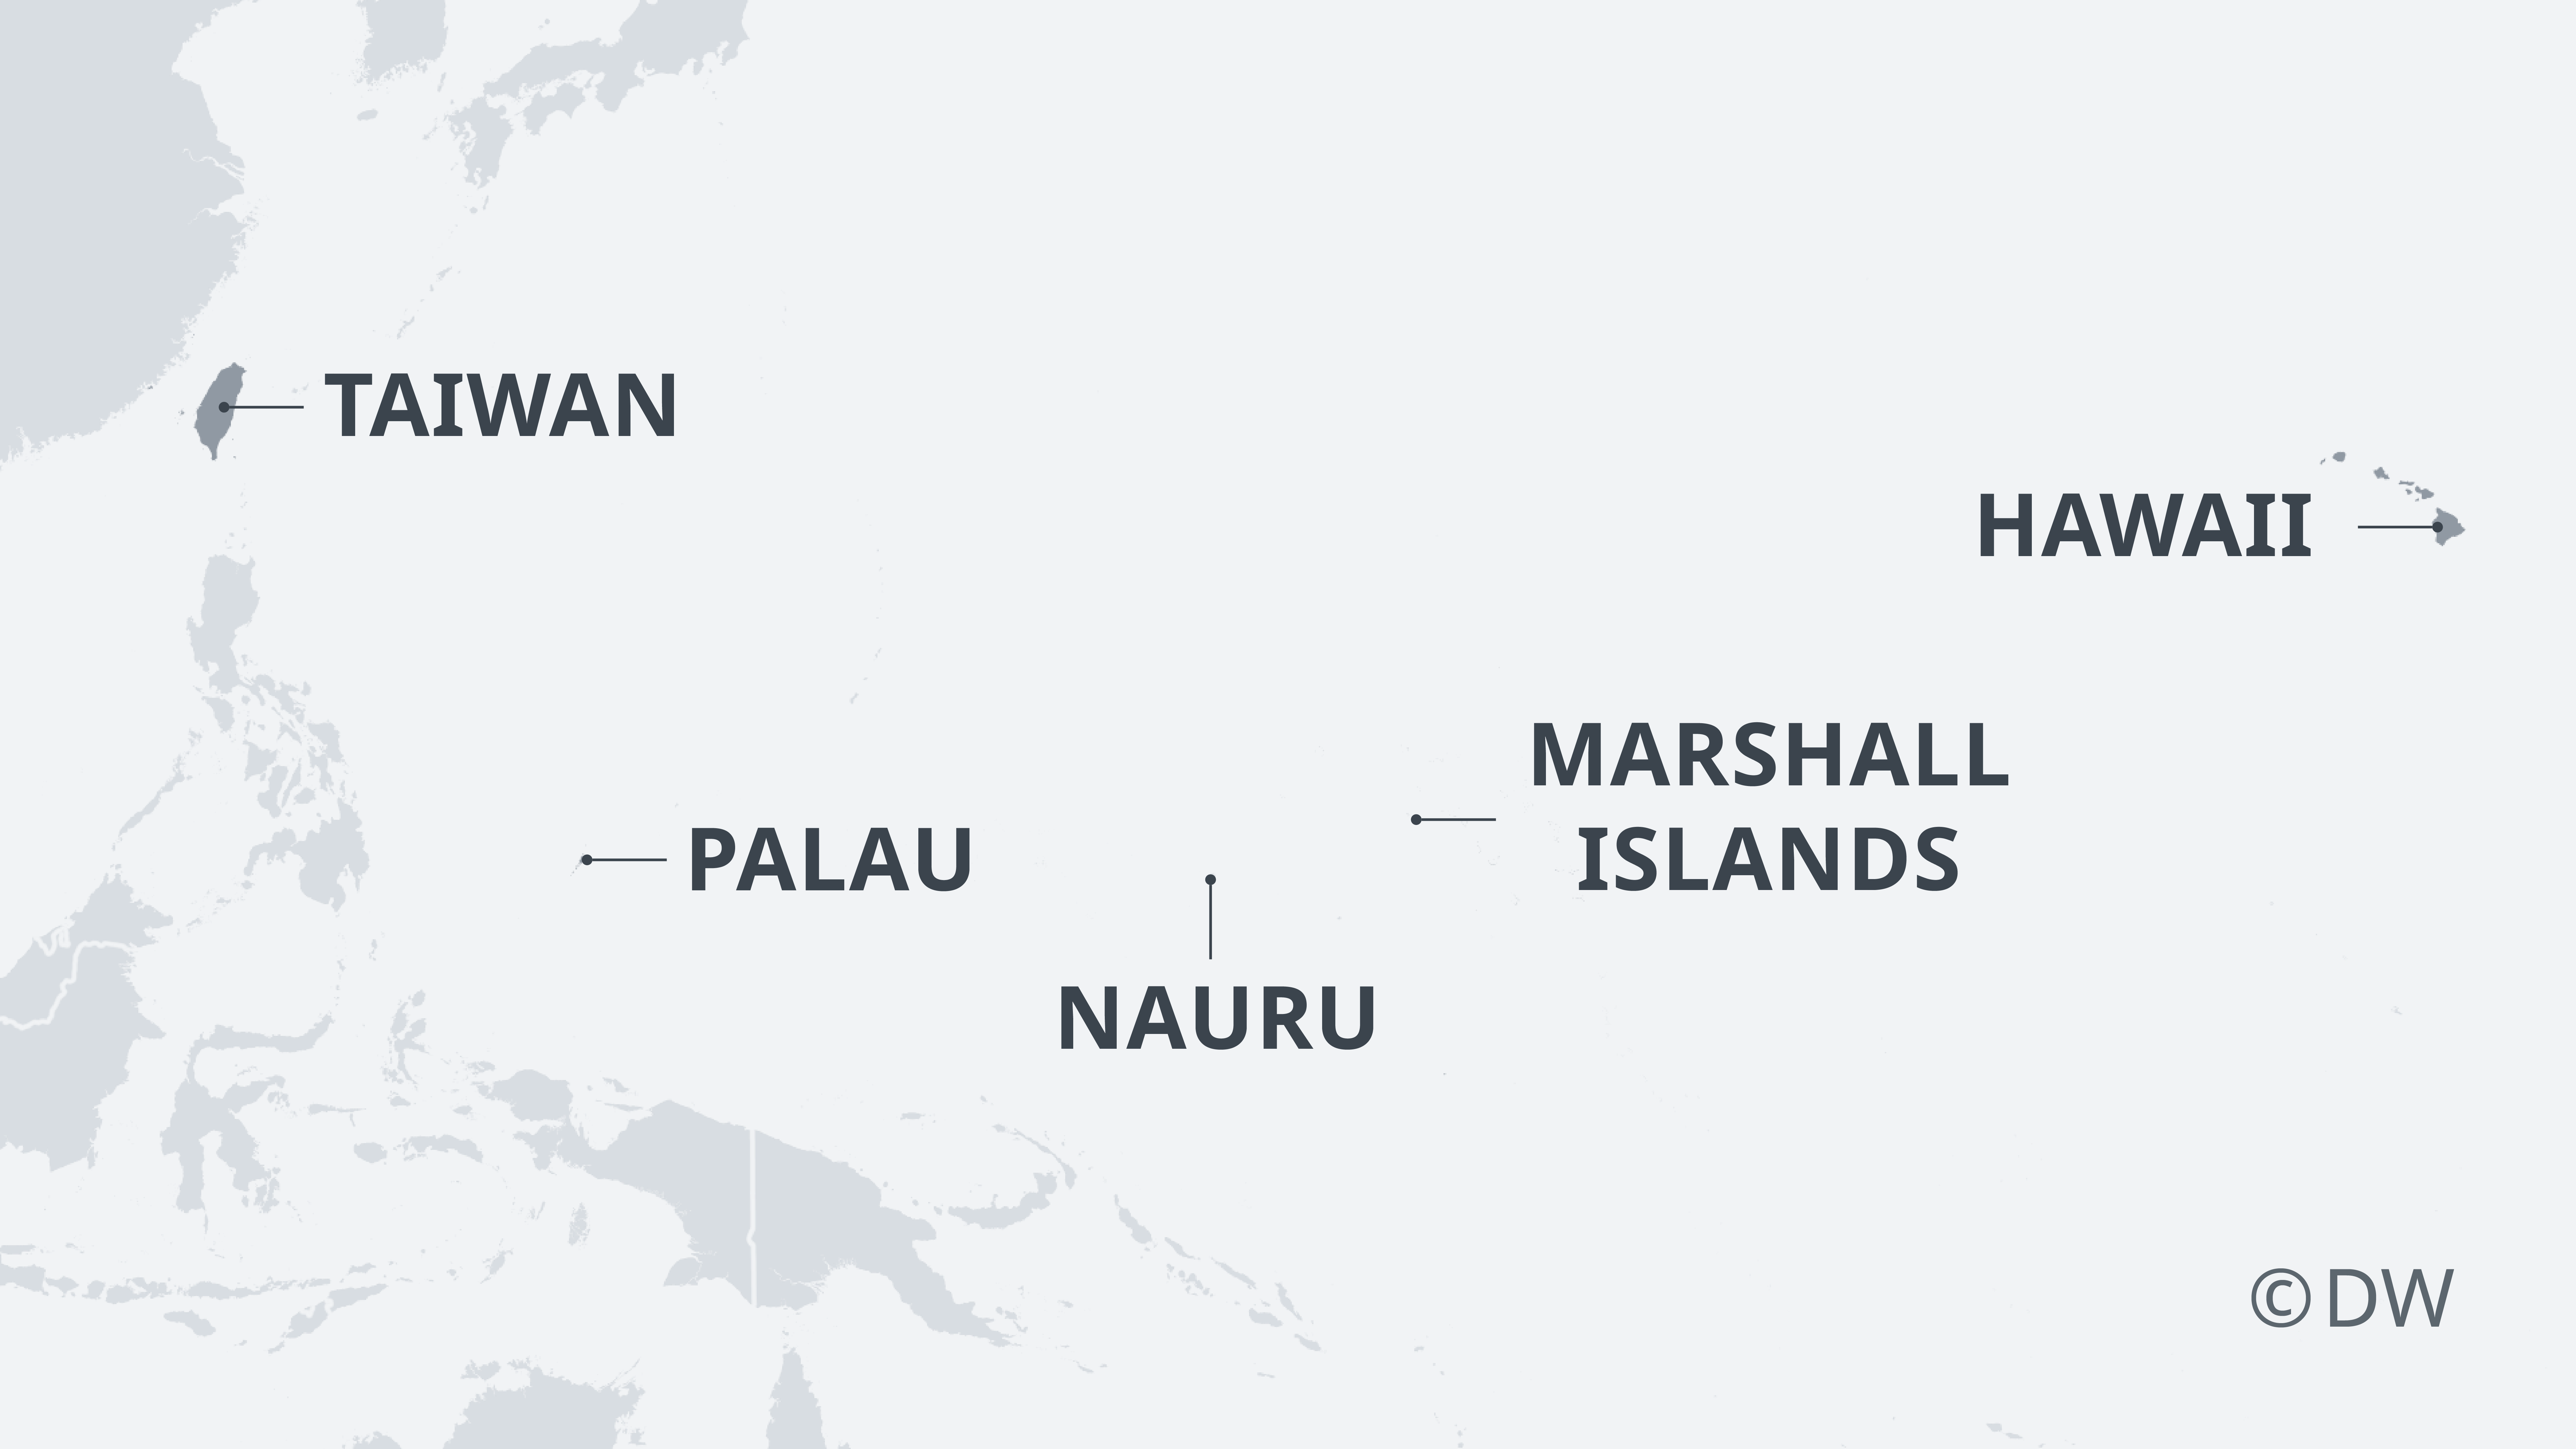 Islands in the Pacific